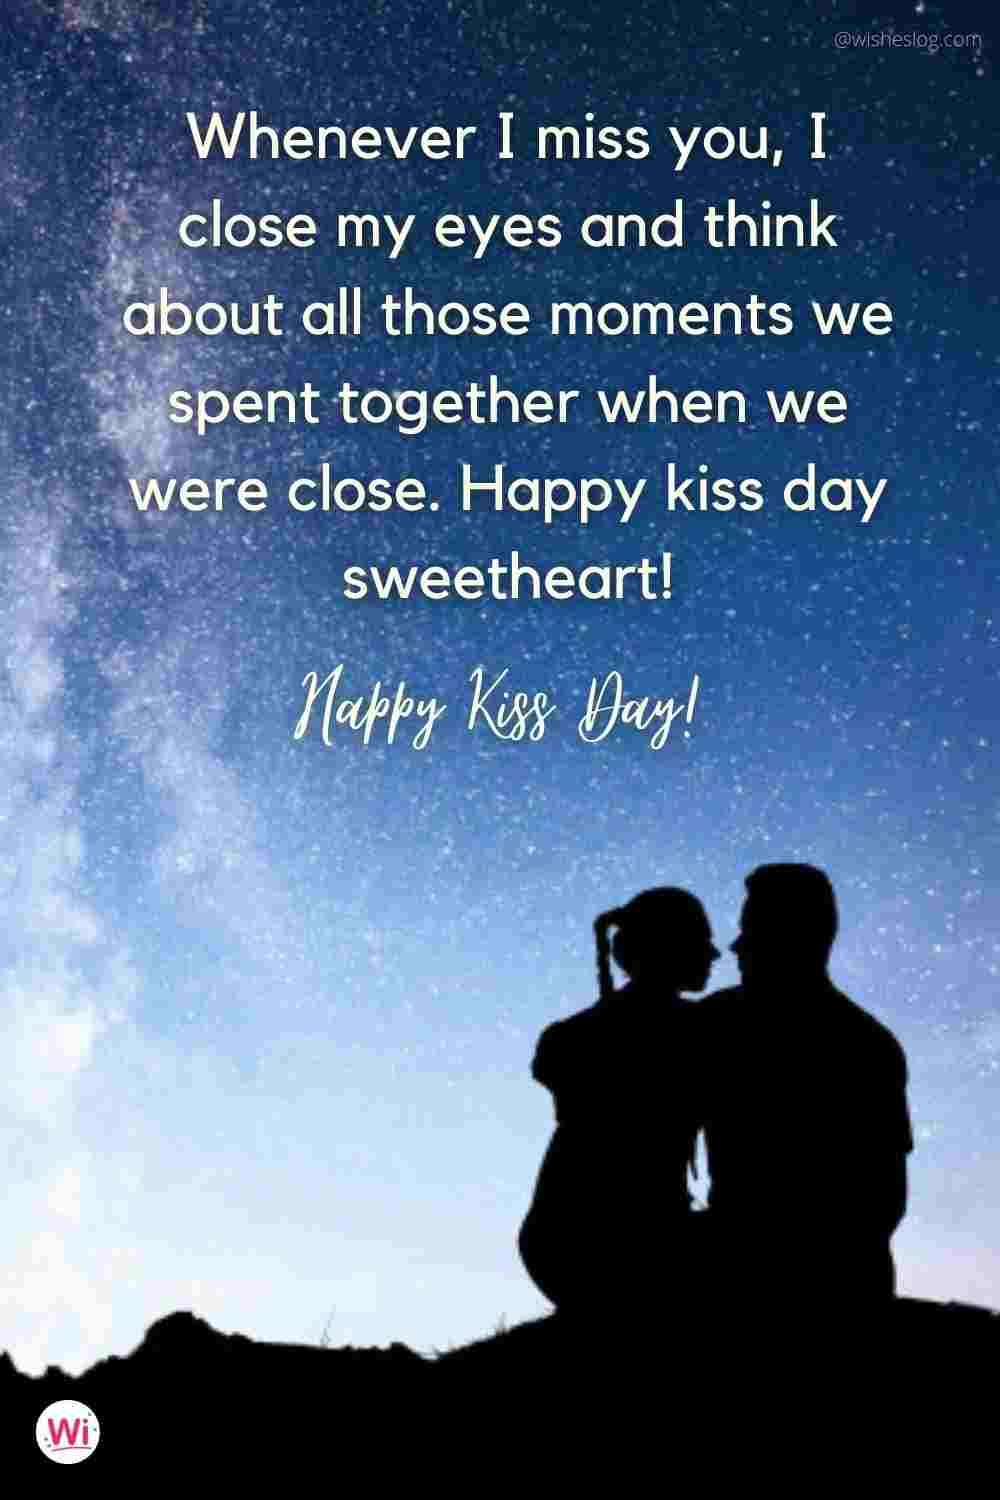 kiss day wishes for girlfriend